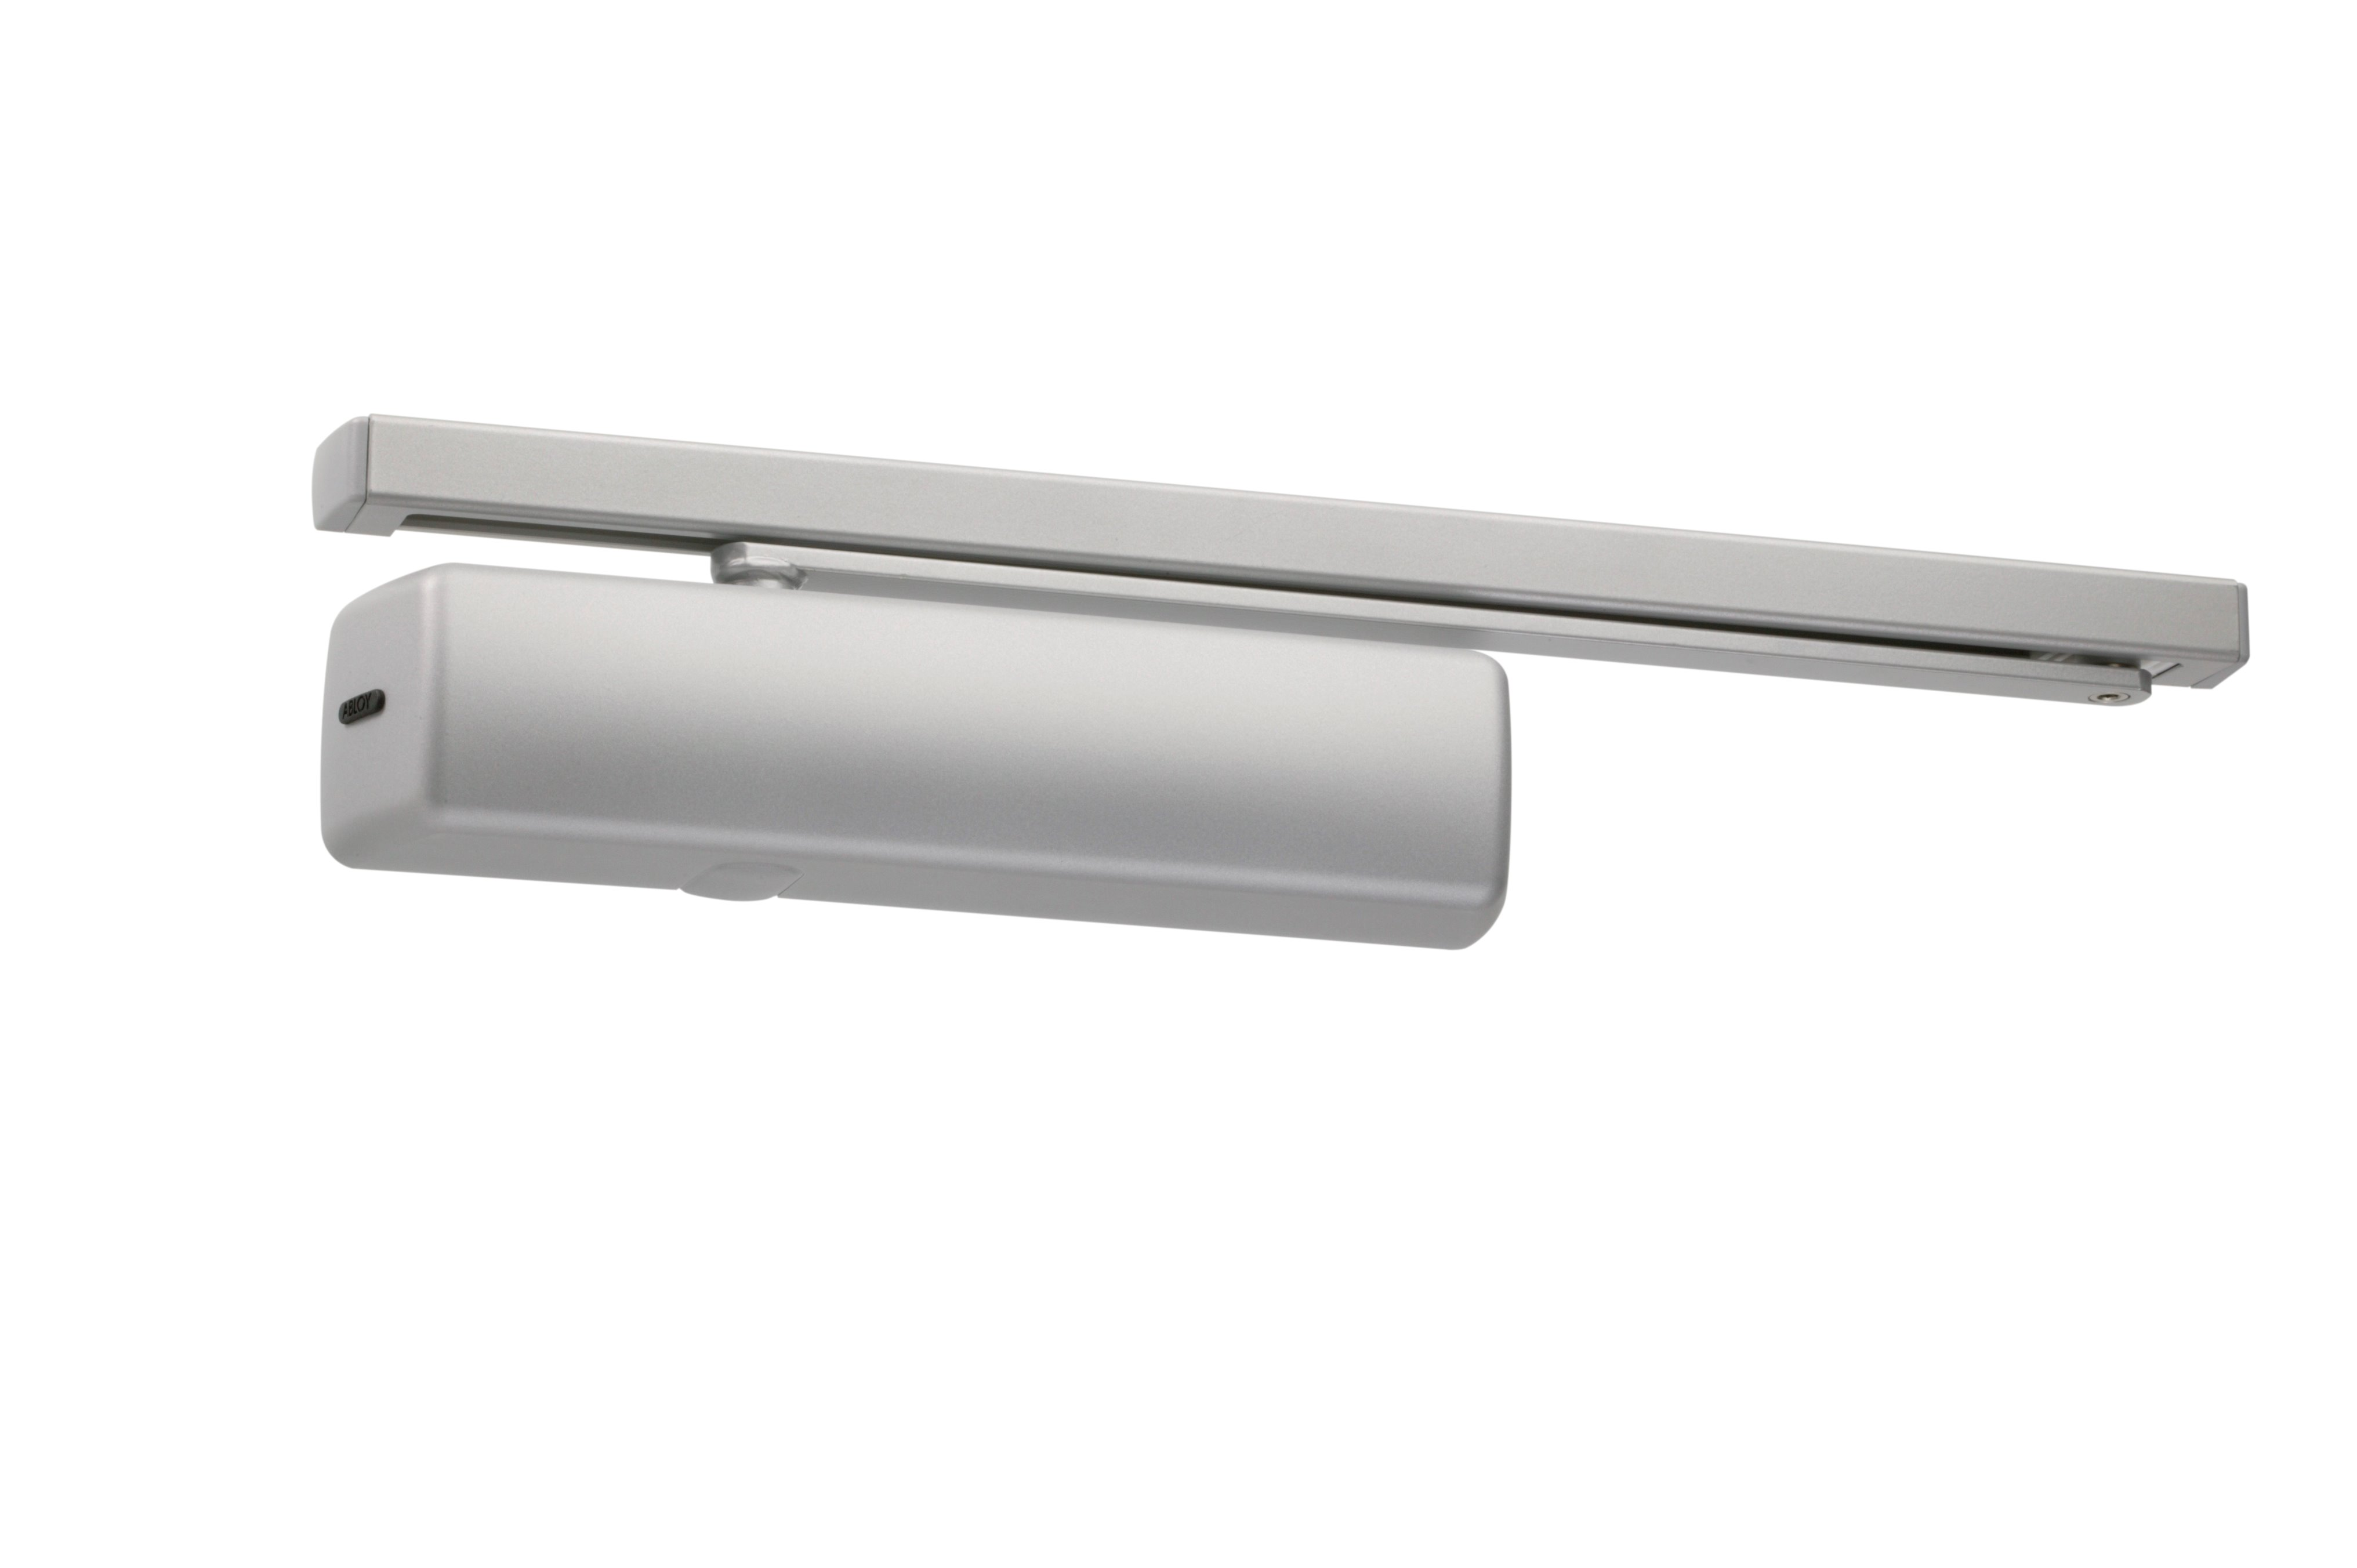 Dc250 Door Closer Door Closers Abloy Uk Locking